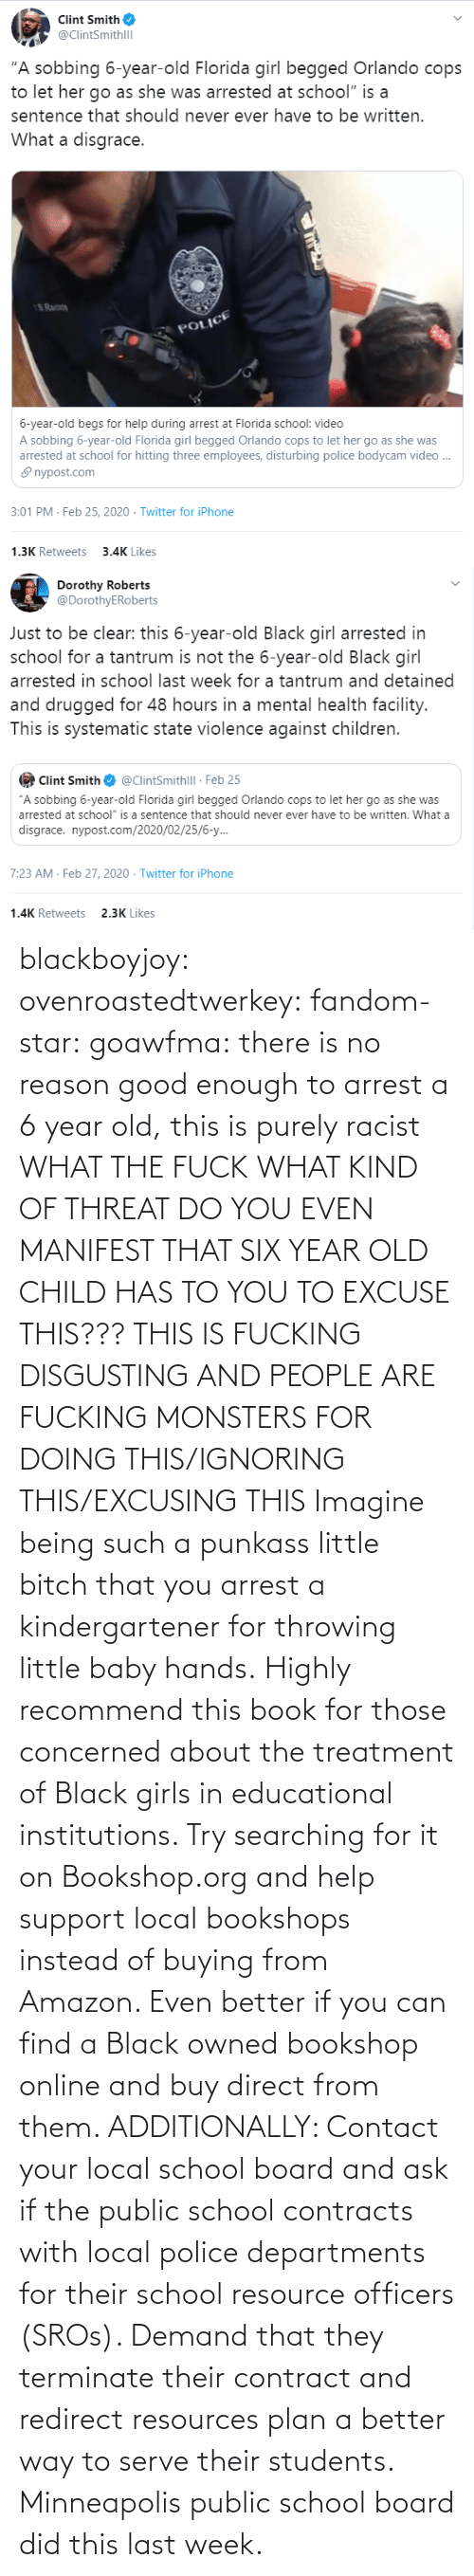 Buy: blackboyjoy:  ovenroastedtwerkey:  fandom-star:  goawfma: there is no reason good enough to arrest a 6 year old, this is purely racist WHAT THE FUCK WHAT KIND OF THREAT DO YOU EVEN MANIFEST THAT SIX YEAR OLD CHILD HAS TO YOU TO EXCUSE THIS??? THIS IS FUCKING DISGUSTING AND PEOPLE ARE FUCKING MONSTERS FOR DOING THIS/IGNORING THIS/EXCUSING THIS    Imagine being such a punkass little bitch that you arrest a kindergartener for throwing little baby hands.  Highly recommend this book for those concerned about the treatment of Black girls in educational institutions.  Try searching for it on Bookshop.org and help support local bookshops instead of buying from Amazon. Even better if you can find a Black owned bookshop online and buy direct from them.  ADDITIONALLY: Contact your local school board and ask if the public school contracts with local police departments for their school resource officers (SROs). Demand that they terminate their contract and redirect resources plan a better way to serve their students. Minneapolis public school board did this last week.